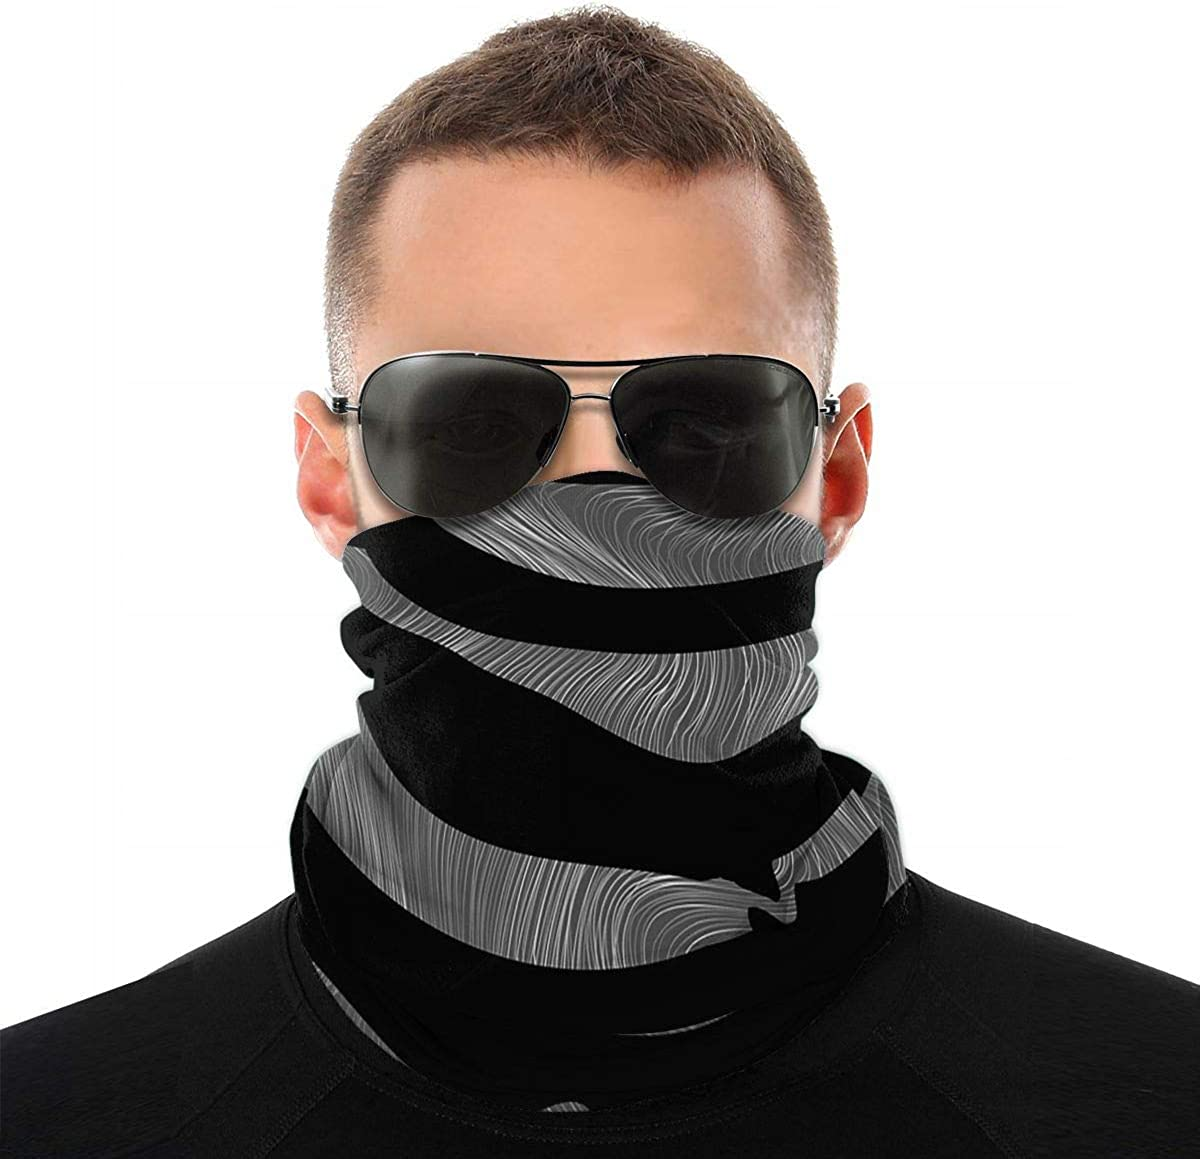 KiuLoam Black and Gray Stripes Pattern Seamless Face Mask Bandanas Neck Gaiter for Men and Women, Multifunction Headband Scarf for Dust, Outdoors, Sports